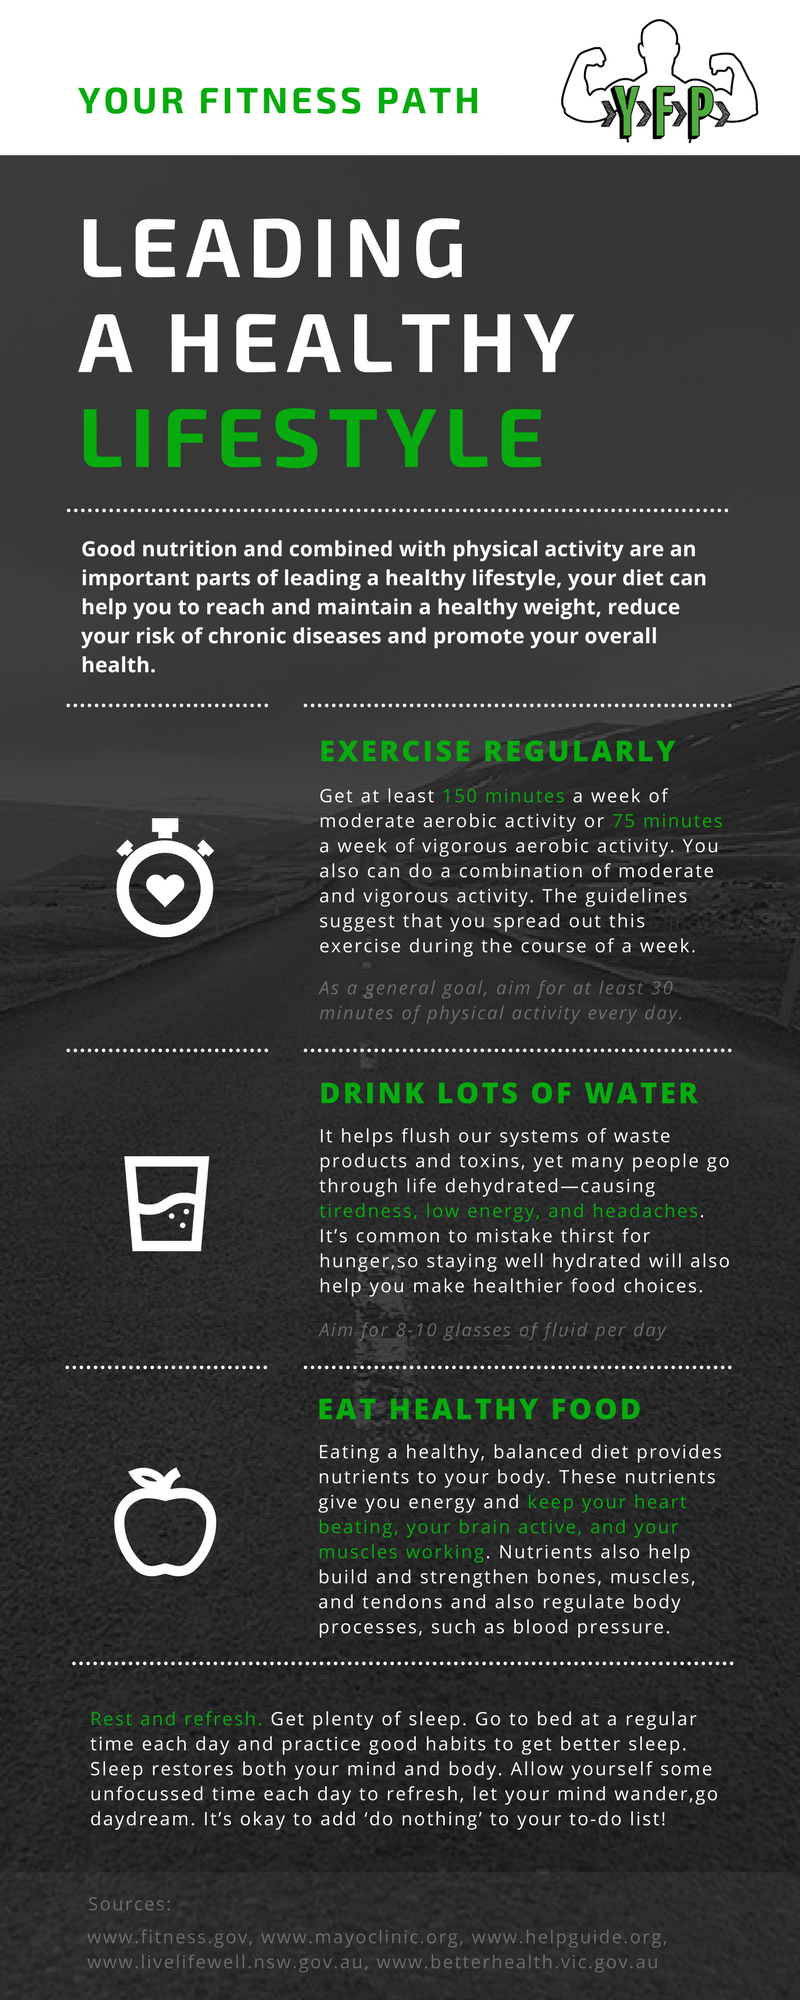 3 Keys to Leading a Healthy Lifestyle - Infographic